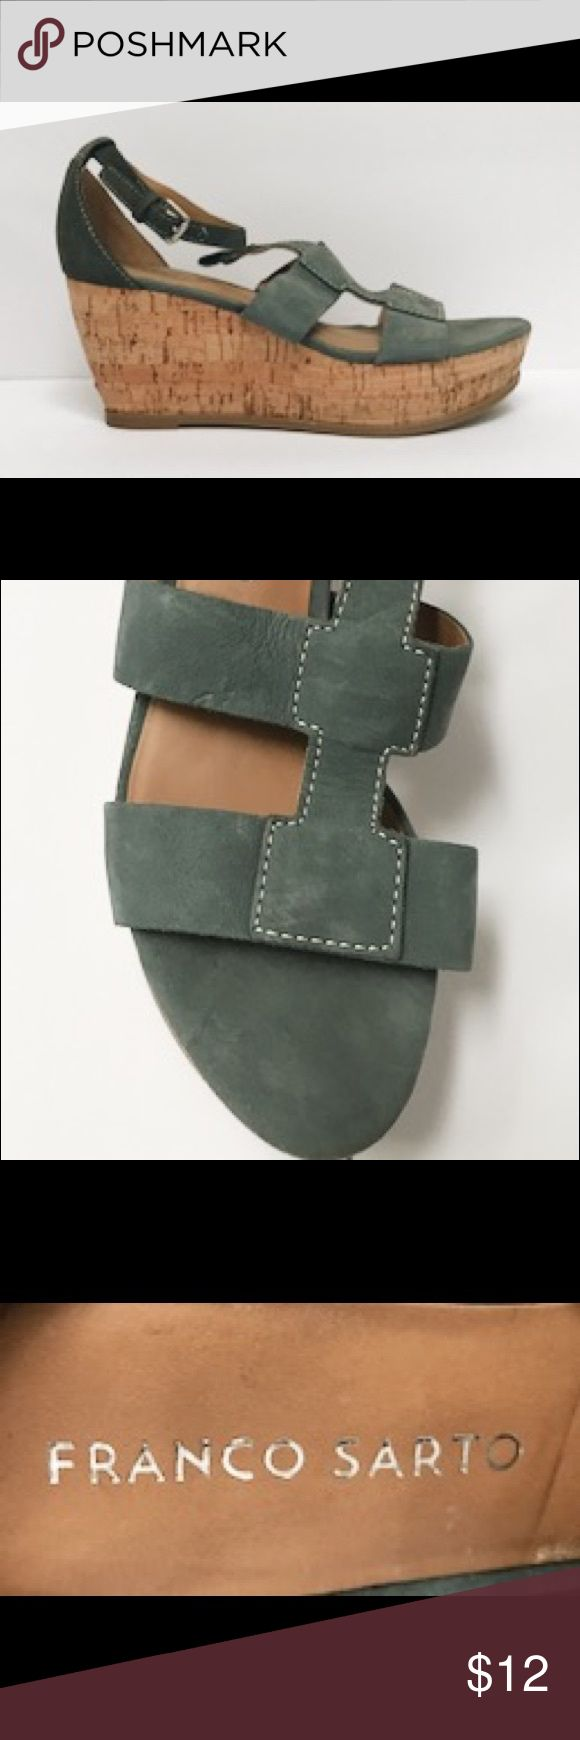 Franco Sarto Grey/Teal Wedge Sandals 6.5 Franco Sarto Grey/Teal Wedge Sandals 6.5. Soft leather upper. Good / gently used condition (see pics)! Franco Sarto Shoes Wedges